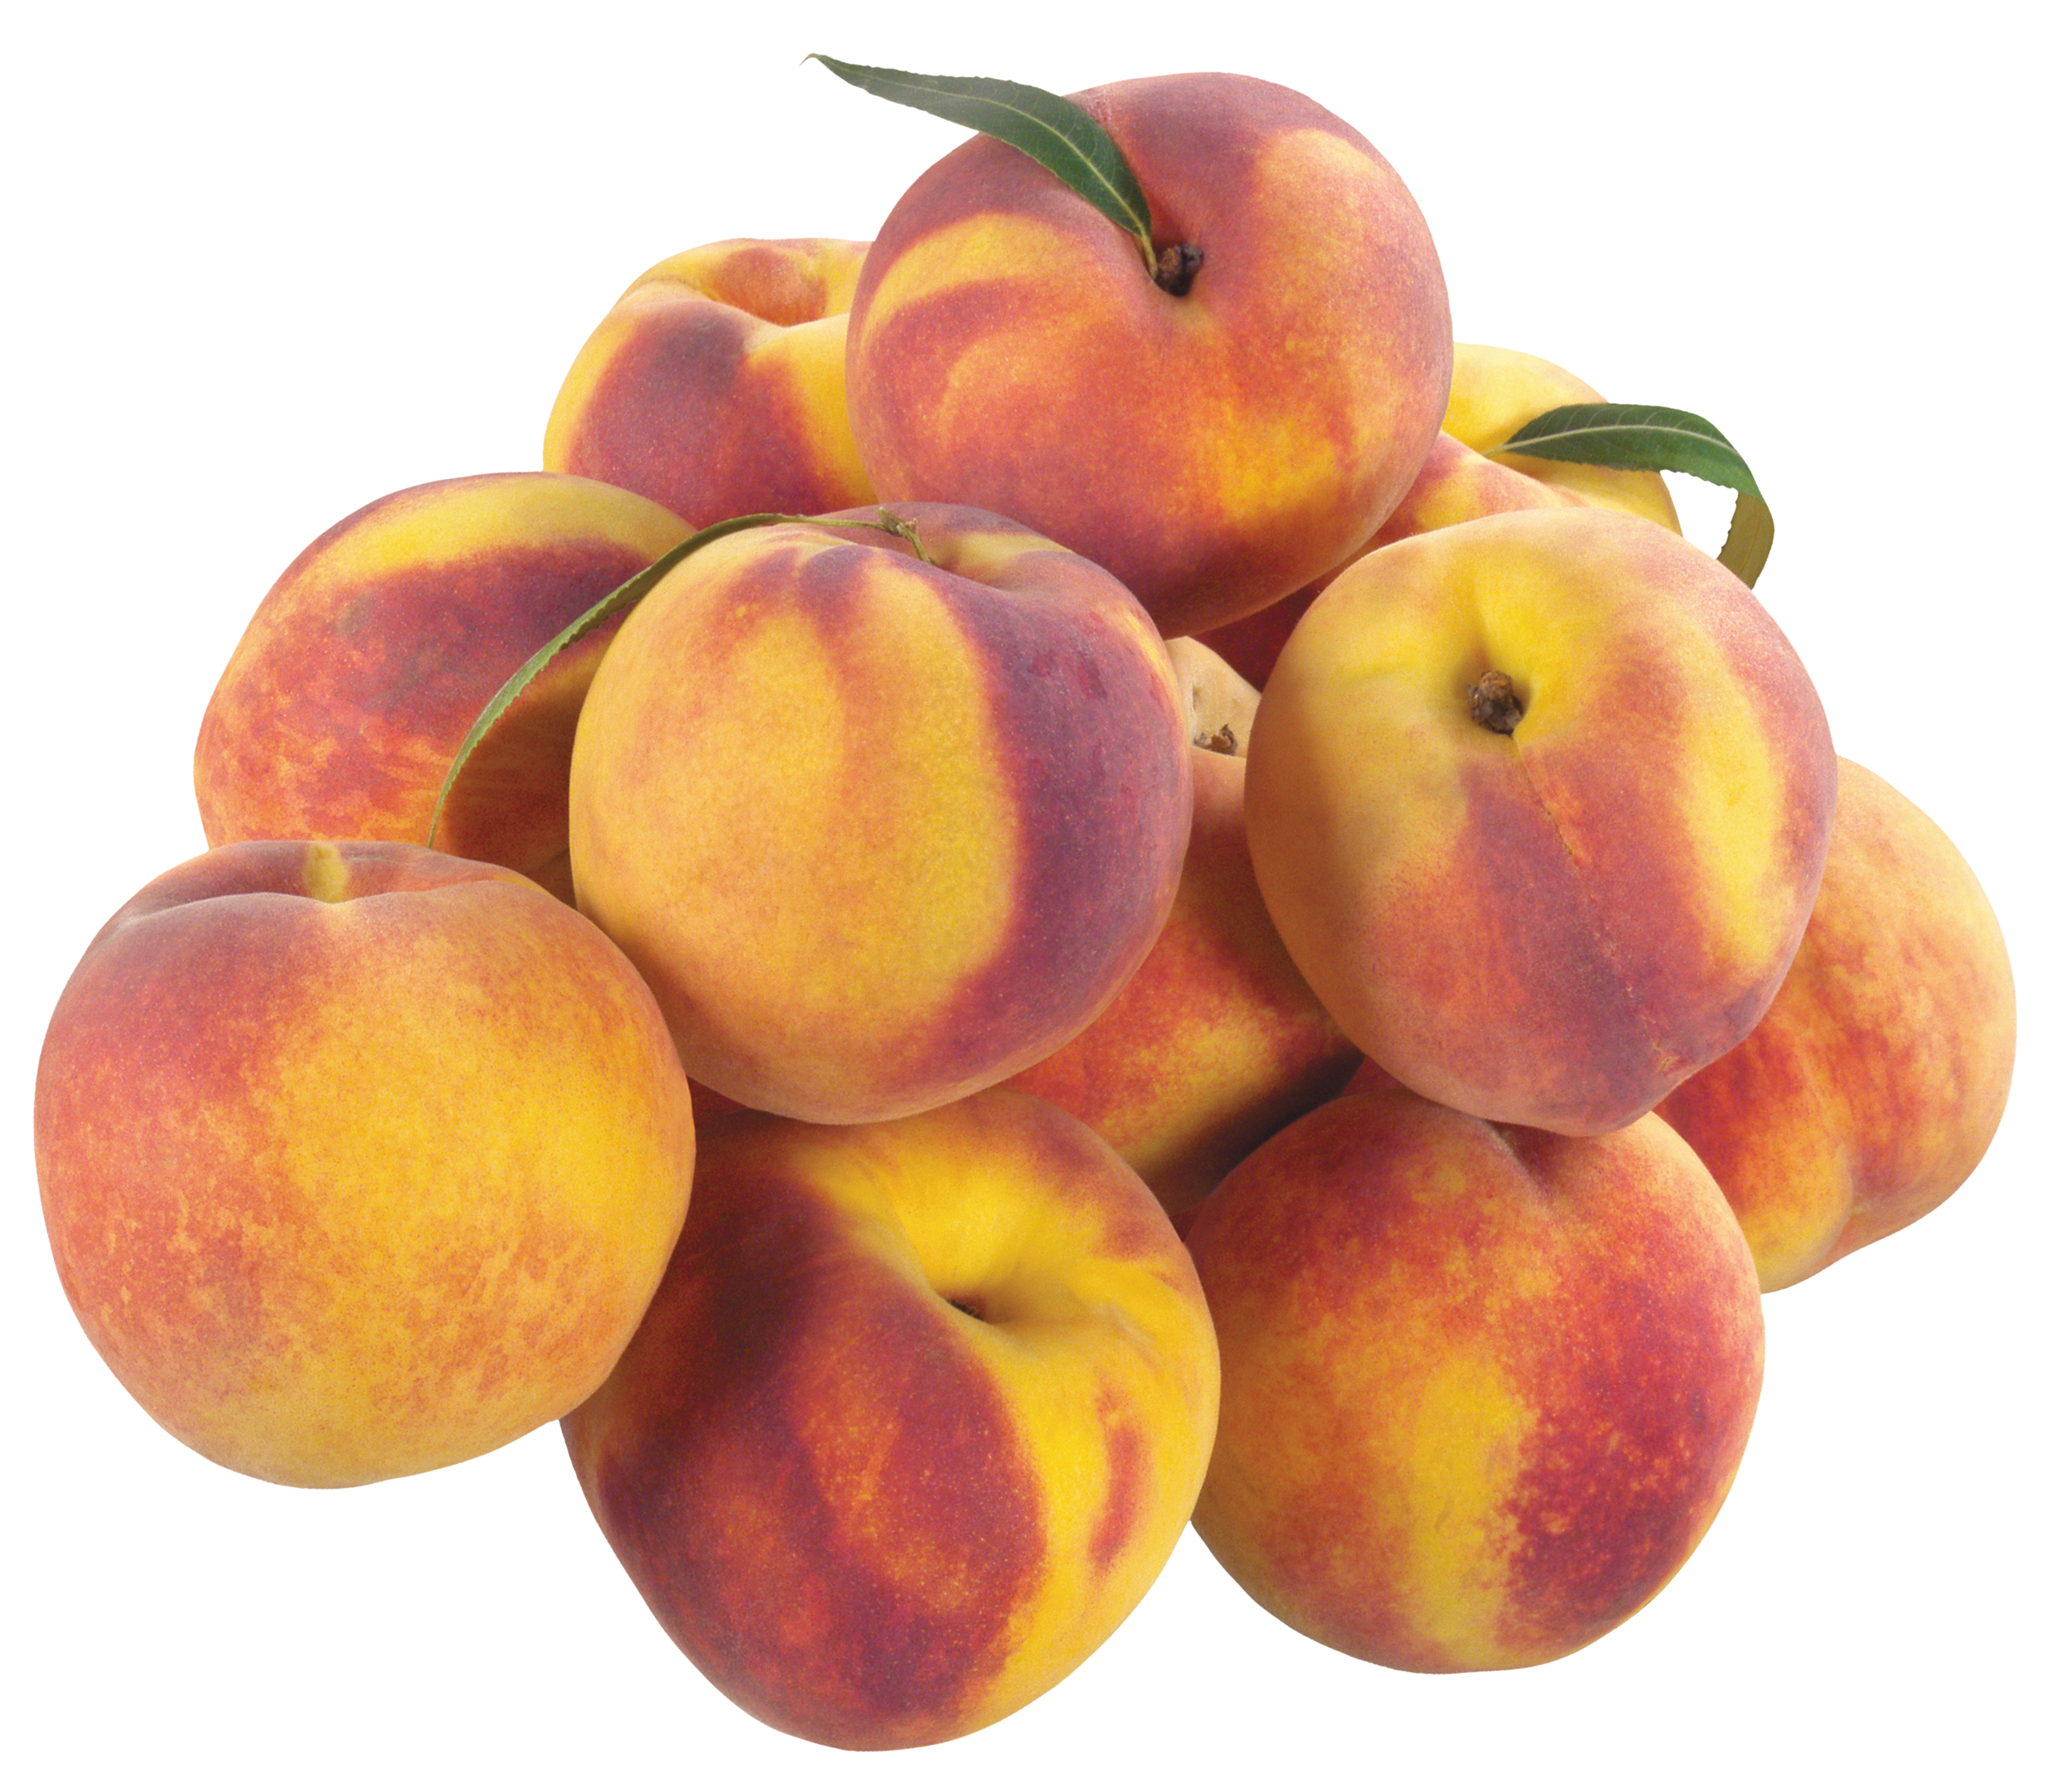 Of peaches png best. Nuts clipart pile